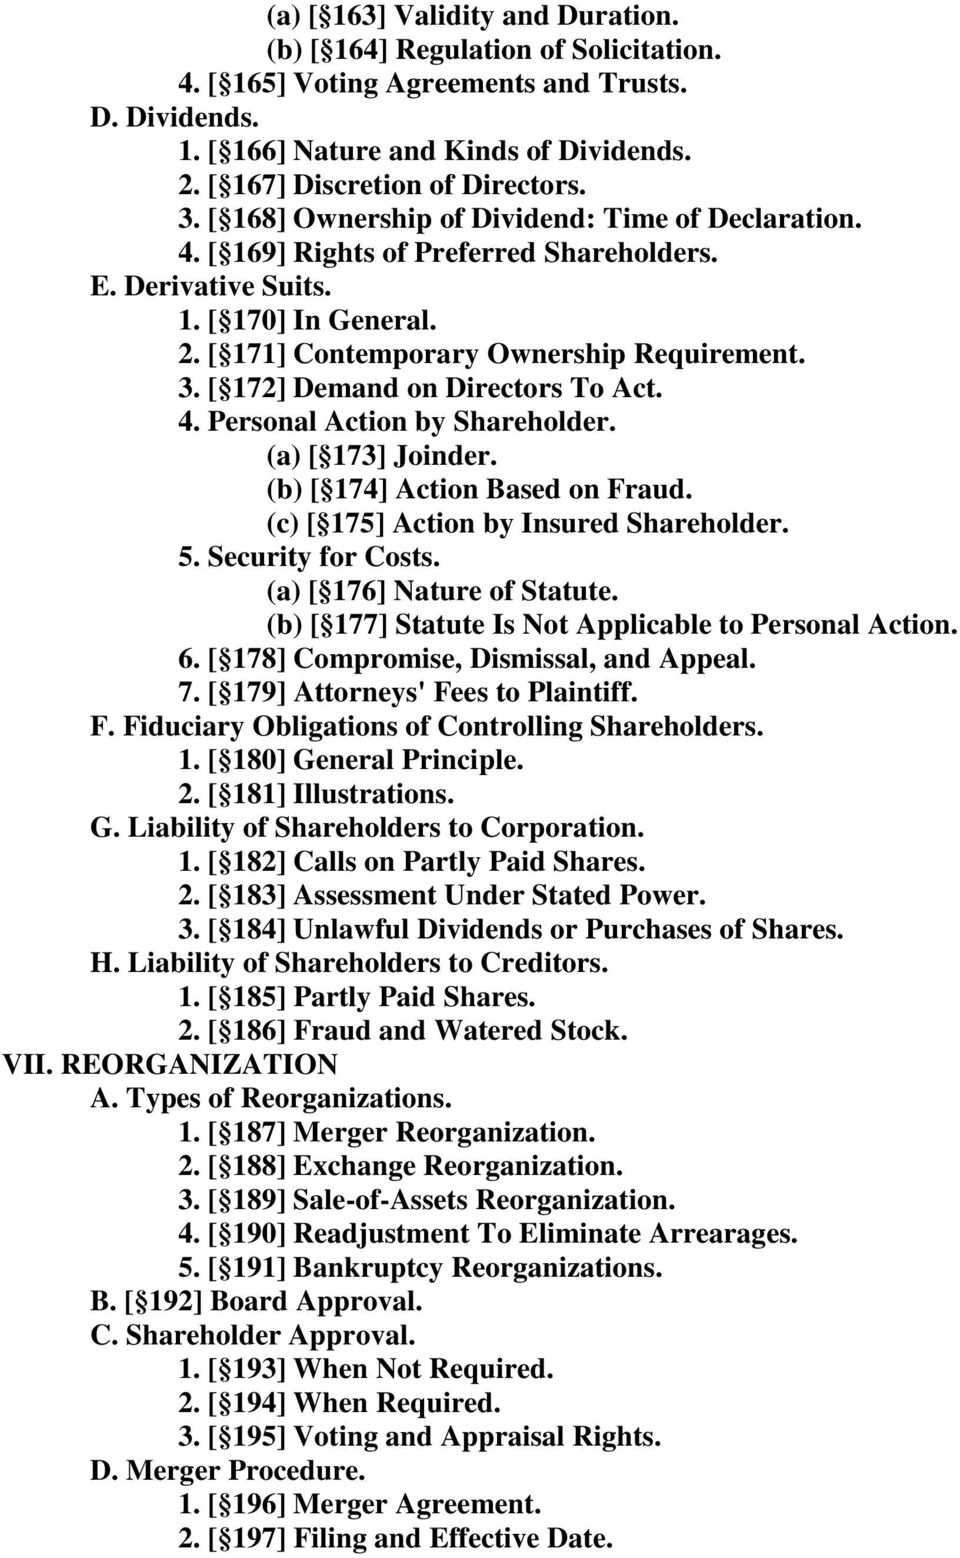 [ 171] Contemporary Ownership Requirement. 3. [ 172] Demand on Directors To Act. 4. Personal Action by Shareholder. (a) [ 173] Joinder. (b) [ 174] Action Based on Fraud.